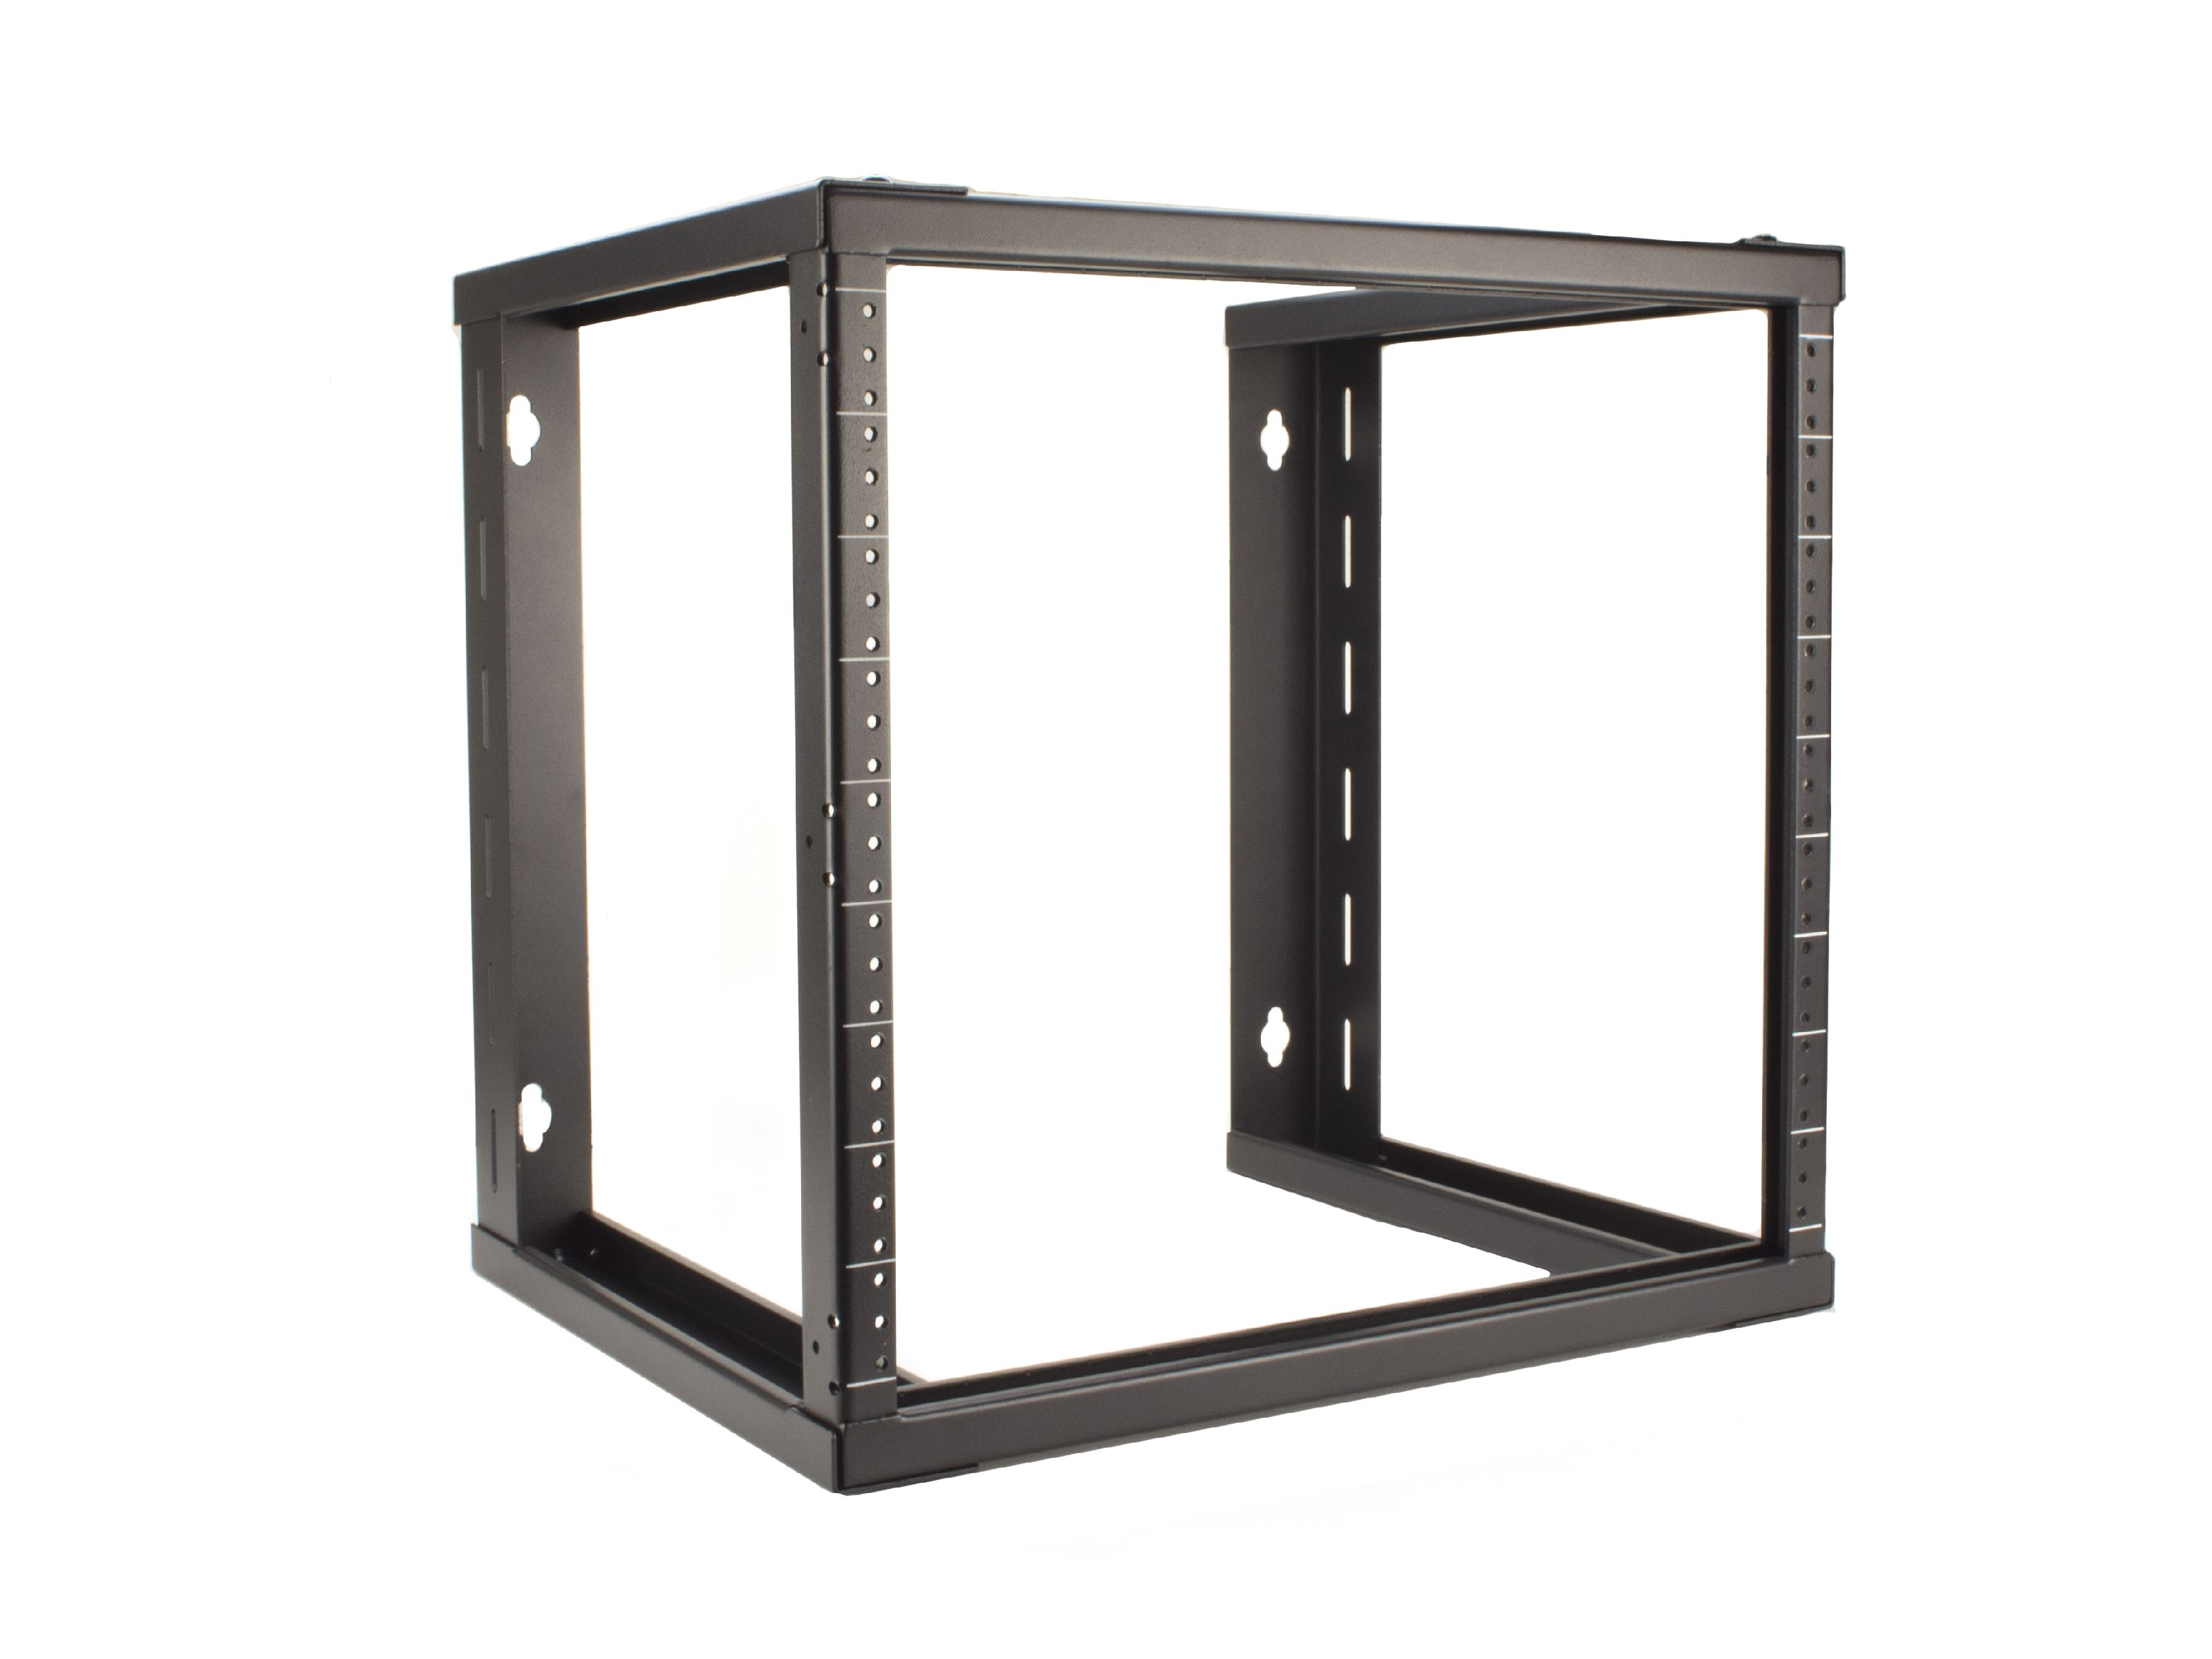 Picture Of 6u Open Frame Wall Mount Rack 101 Series 16 Inches Deep